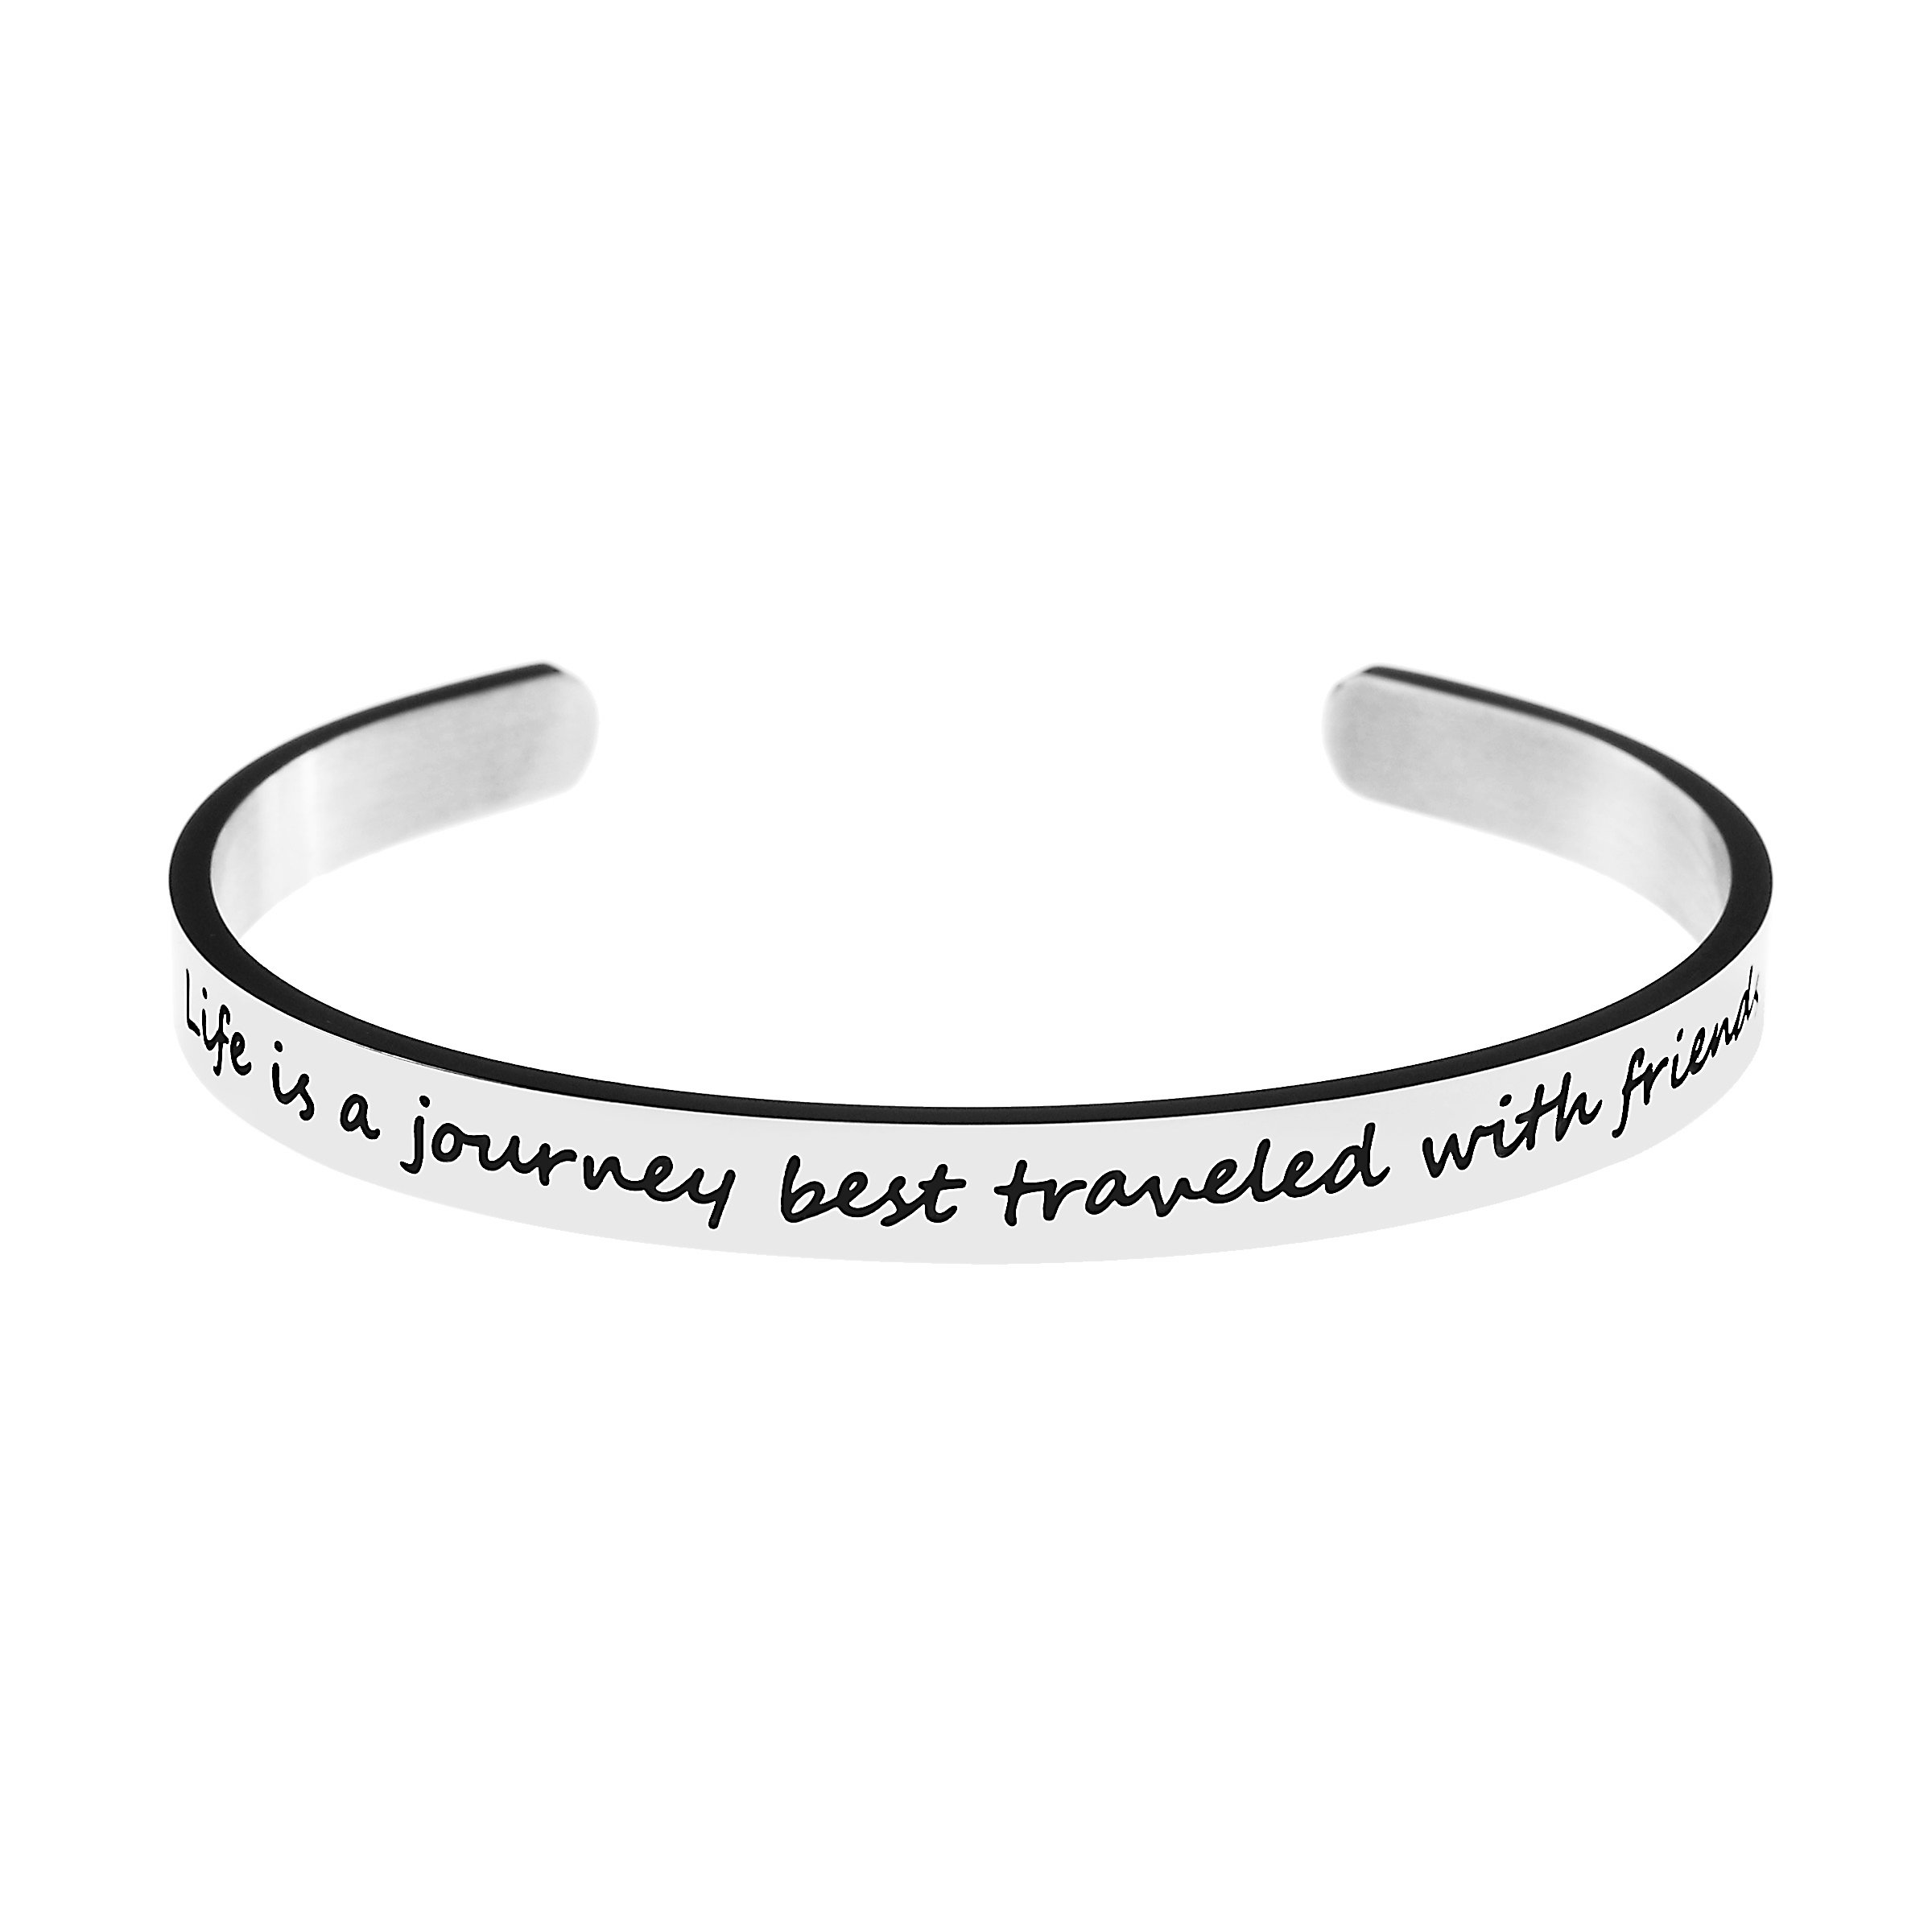 Yiyangjewelry Best Friend Bracelet Gift for Friendship Silver Stainless Steel Cuff Bangle Engraved Inspirational